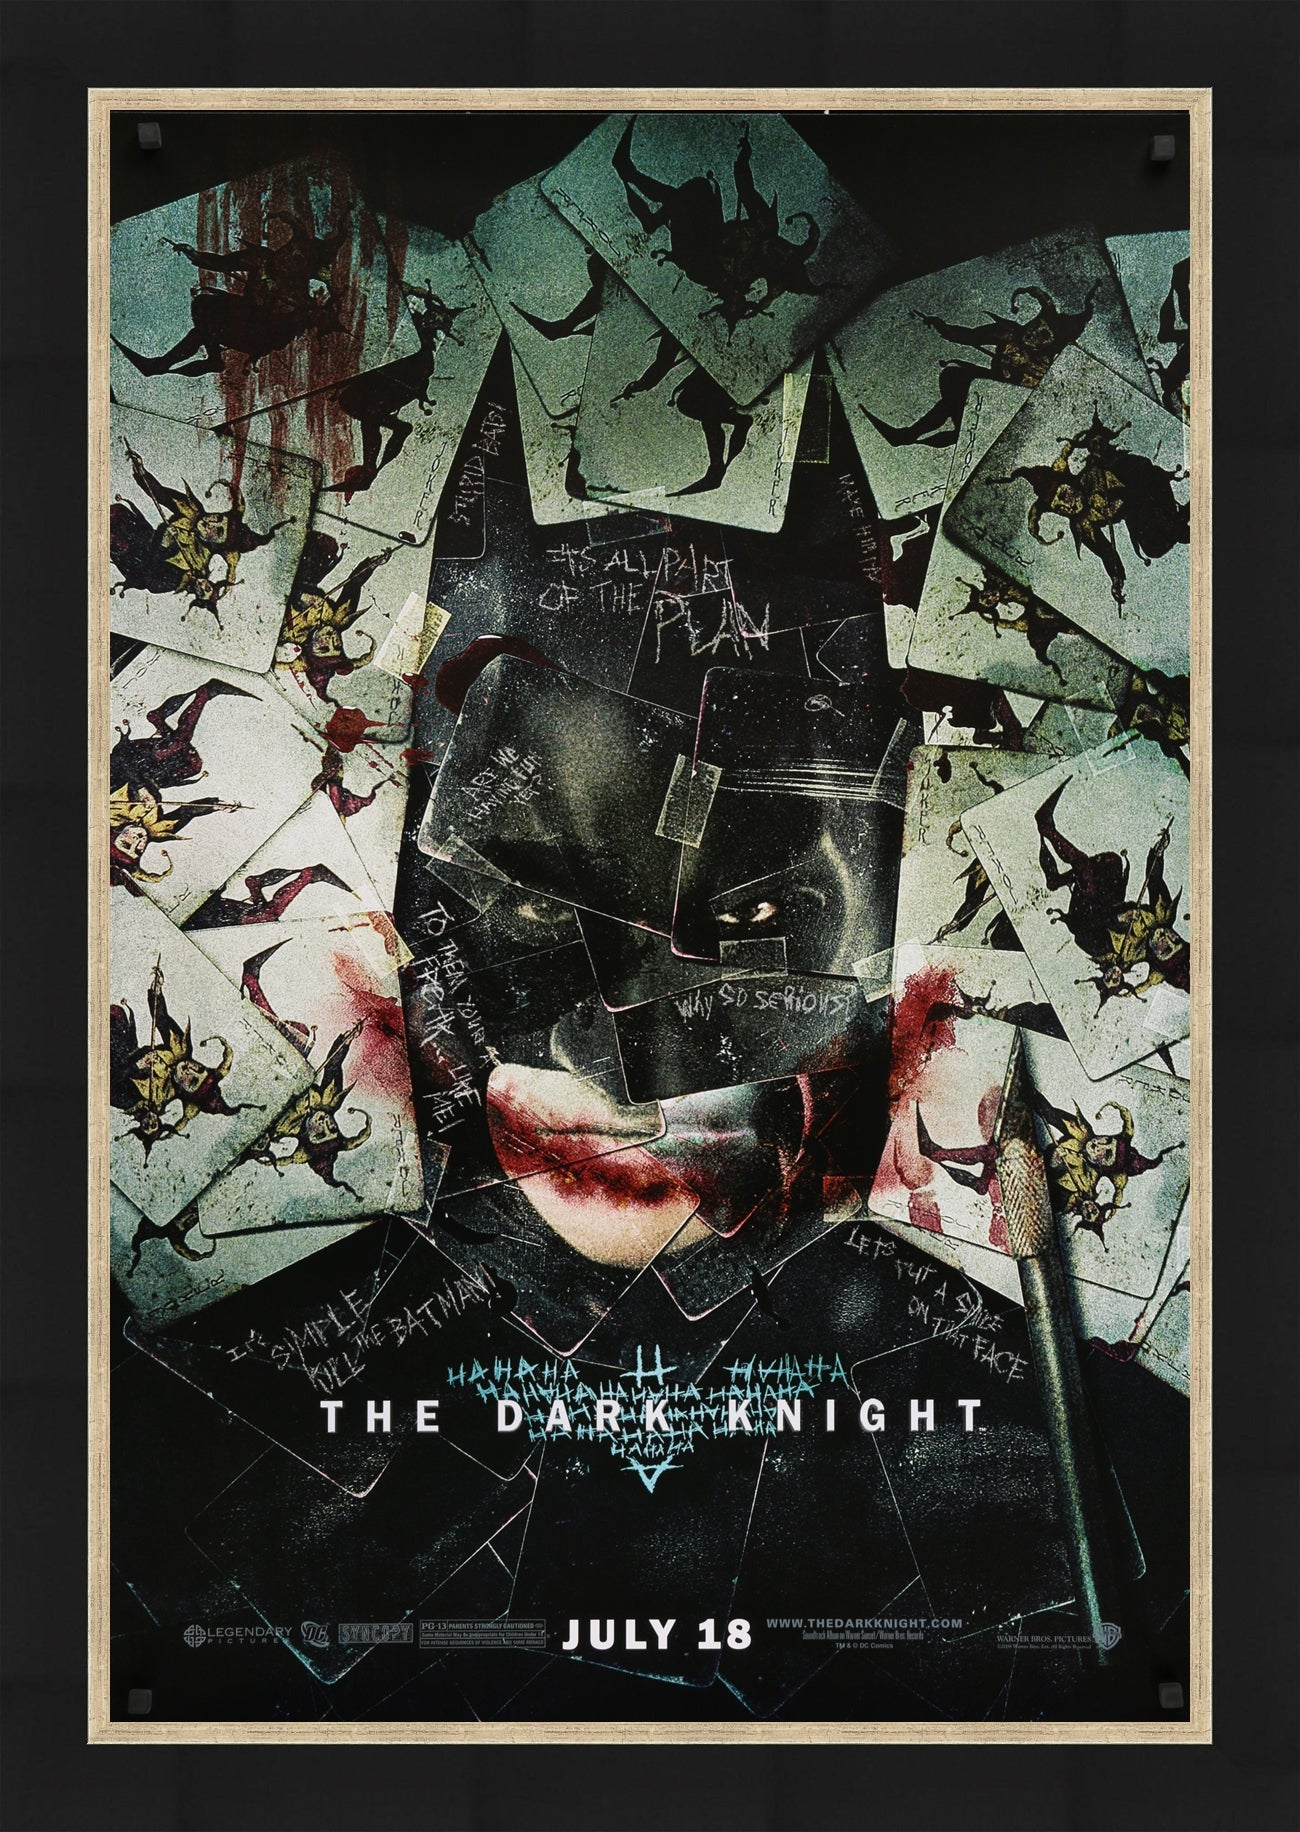 An original movie poster for the Batman film The Dark Knight